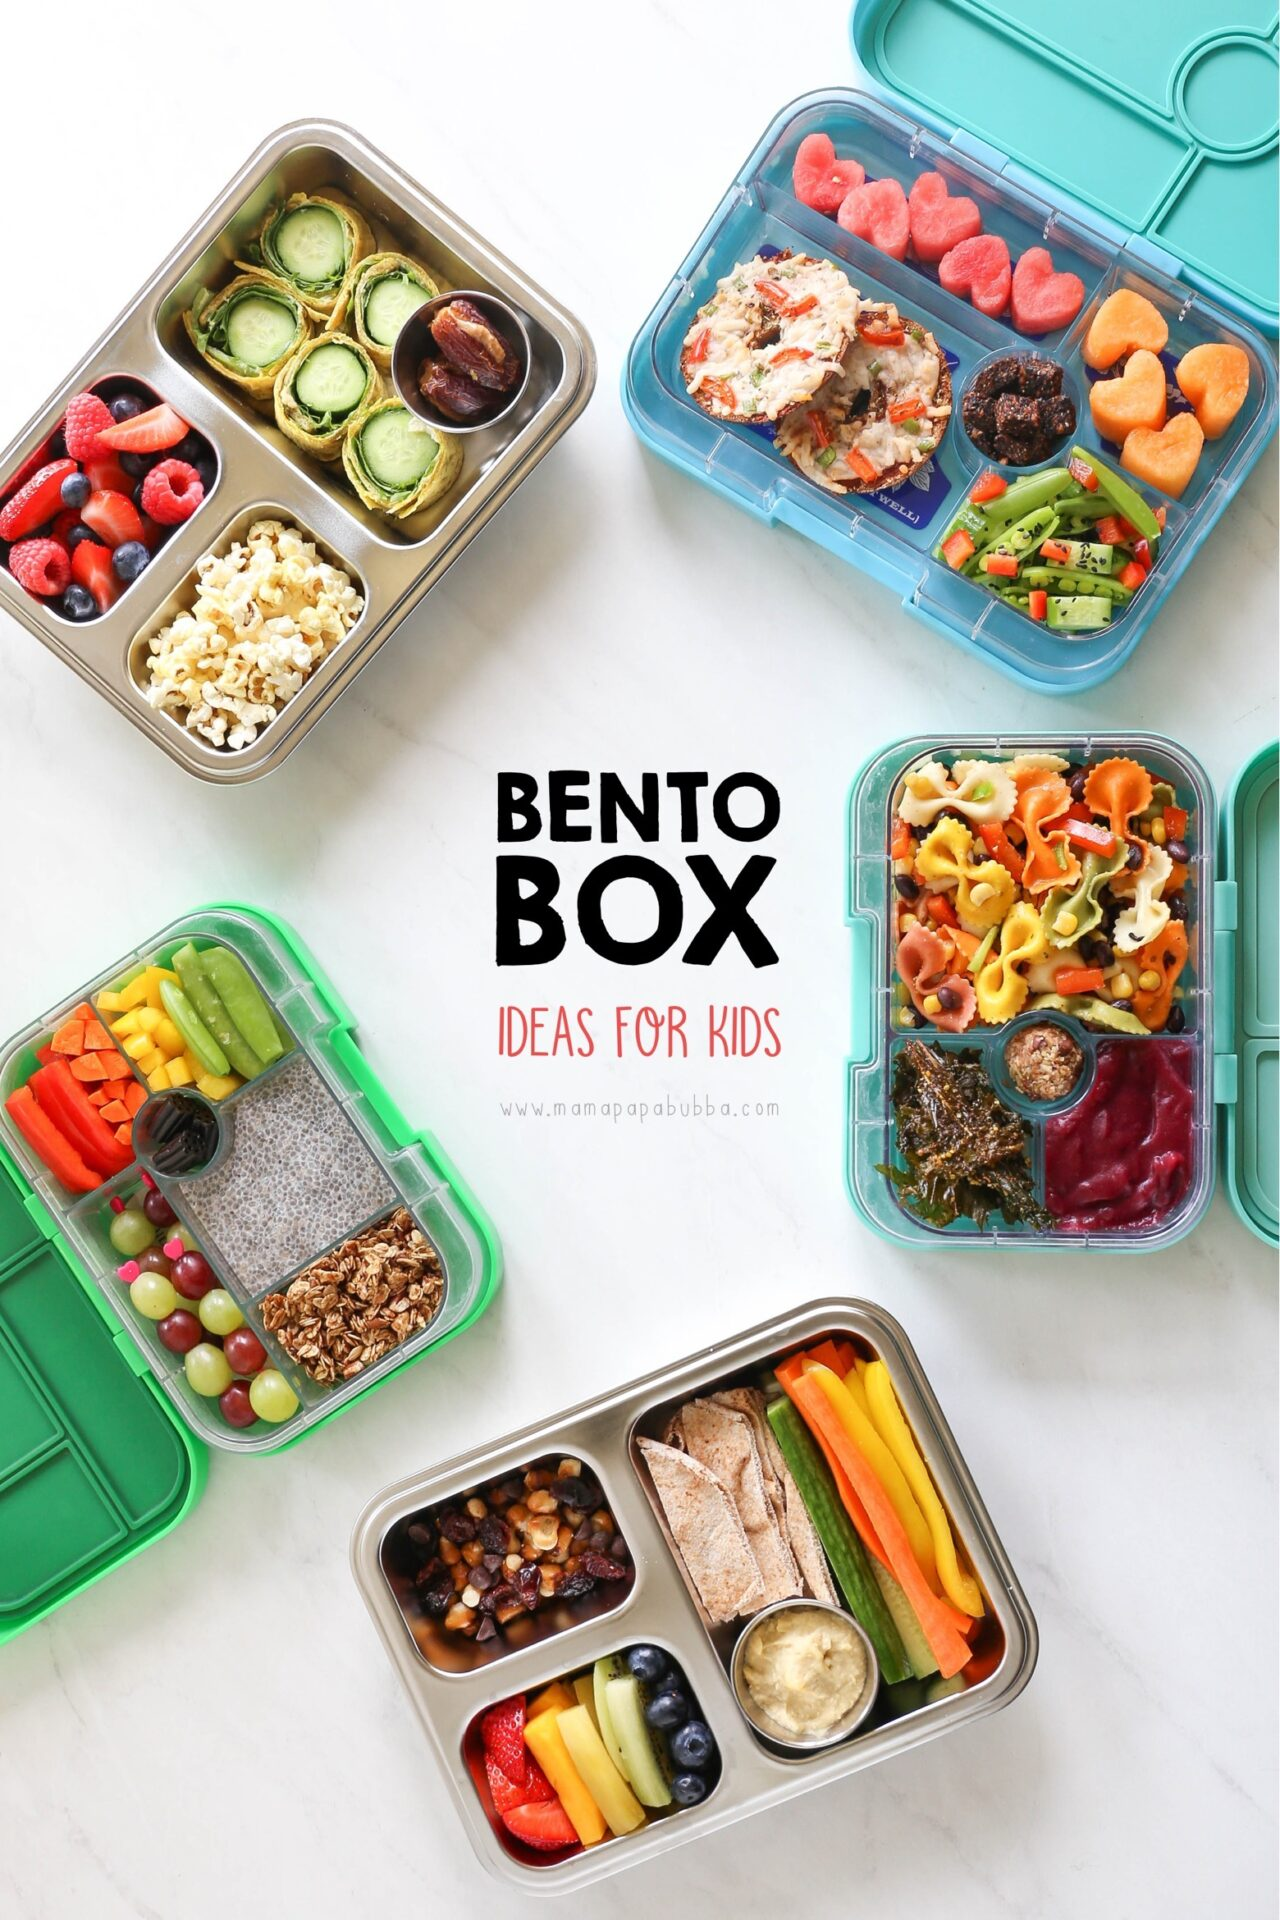 Bento Box Ideas for Kids | Mama Papa Bubba